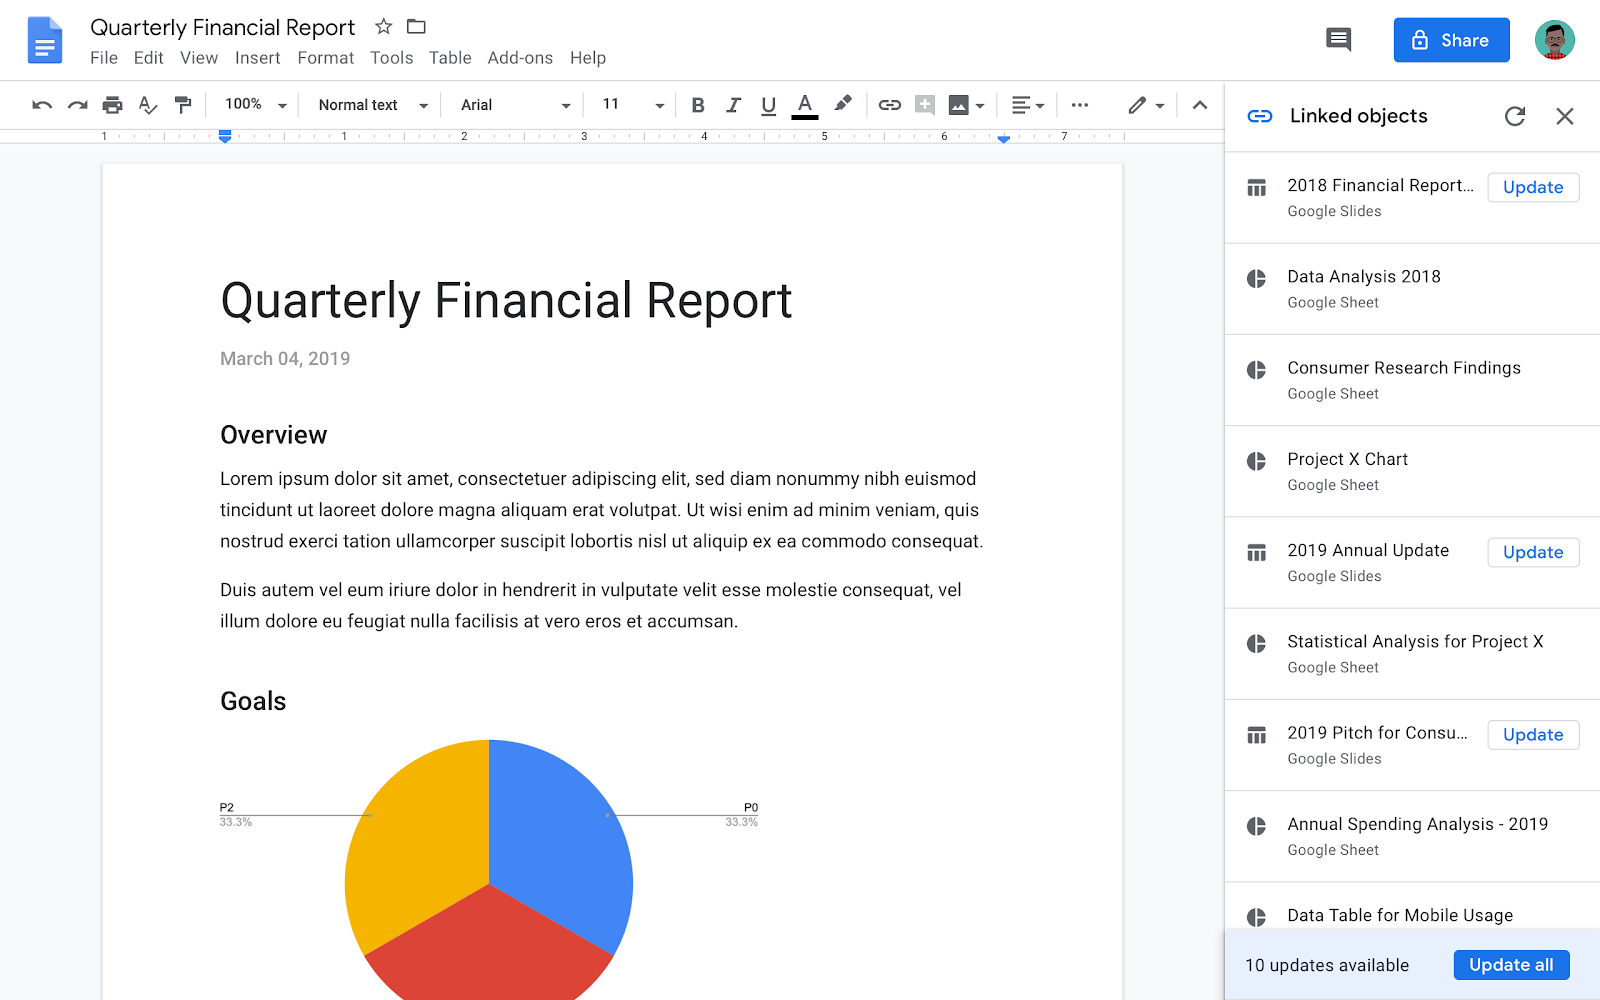 Screenshot of the new sidebar for updating all linked content in Google Docs